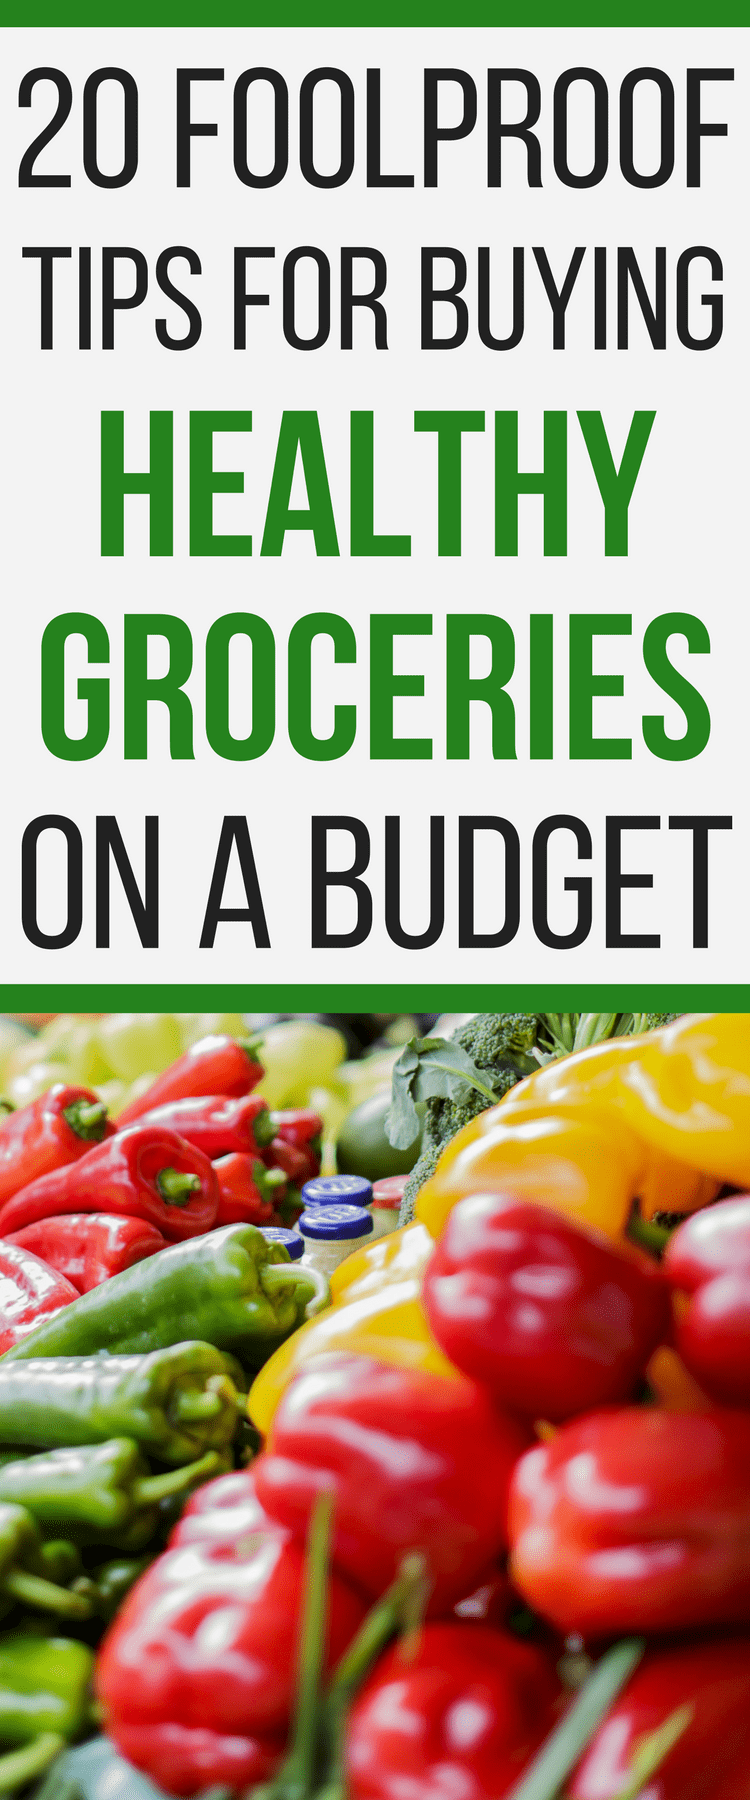 How to buy healthy food cheap! These 20 foolproof tips for buying healthy groceries on a budget are awesome!